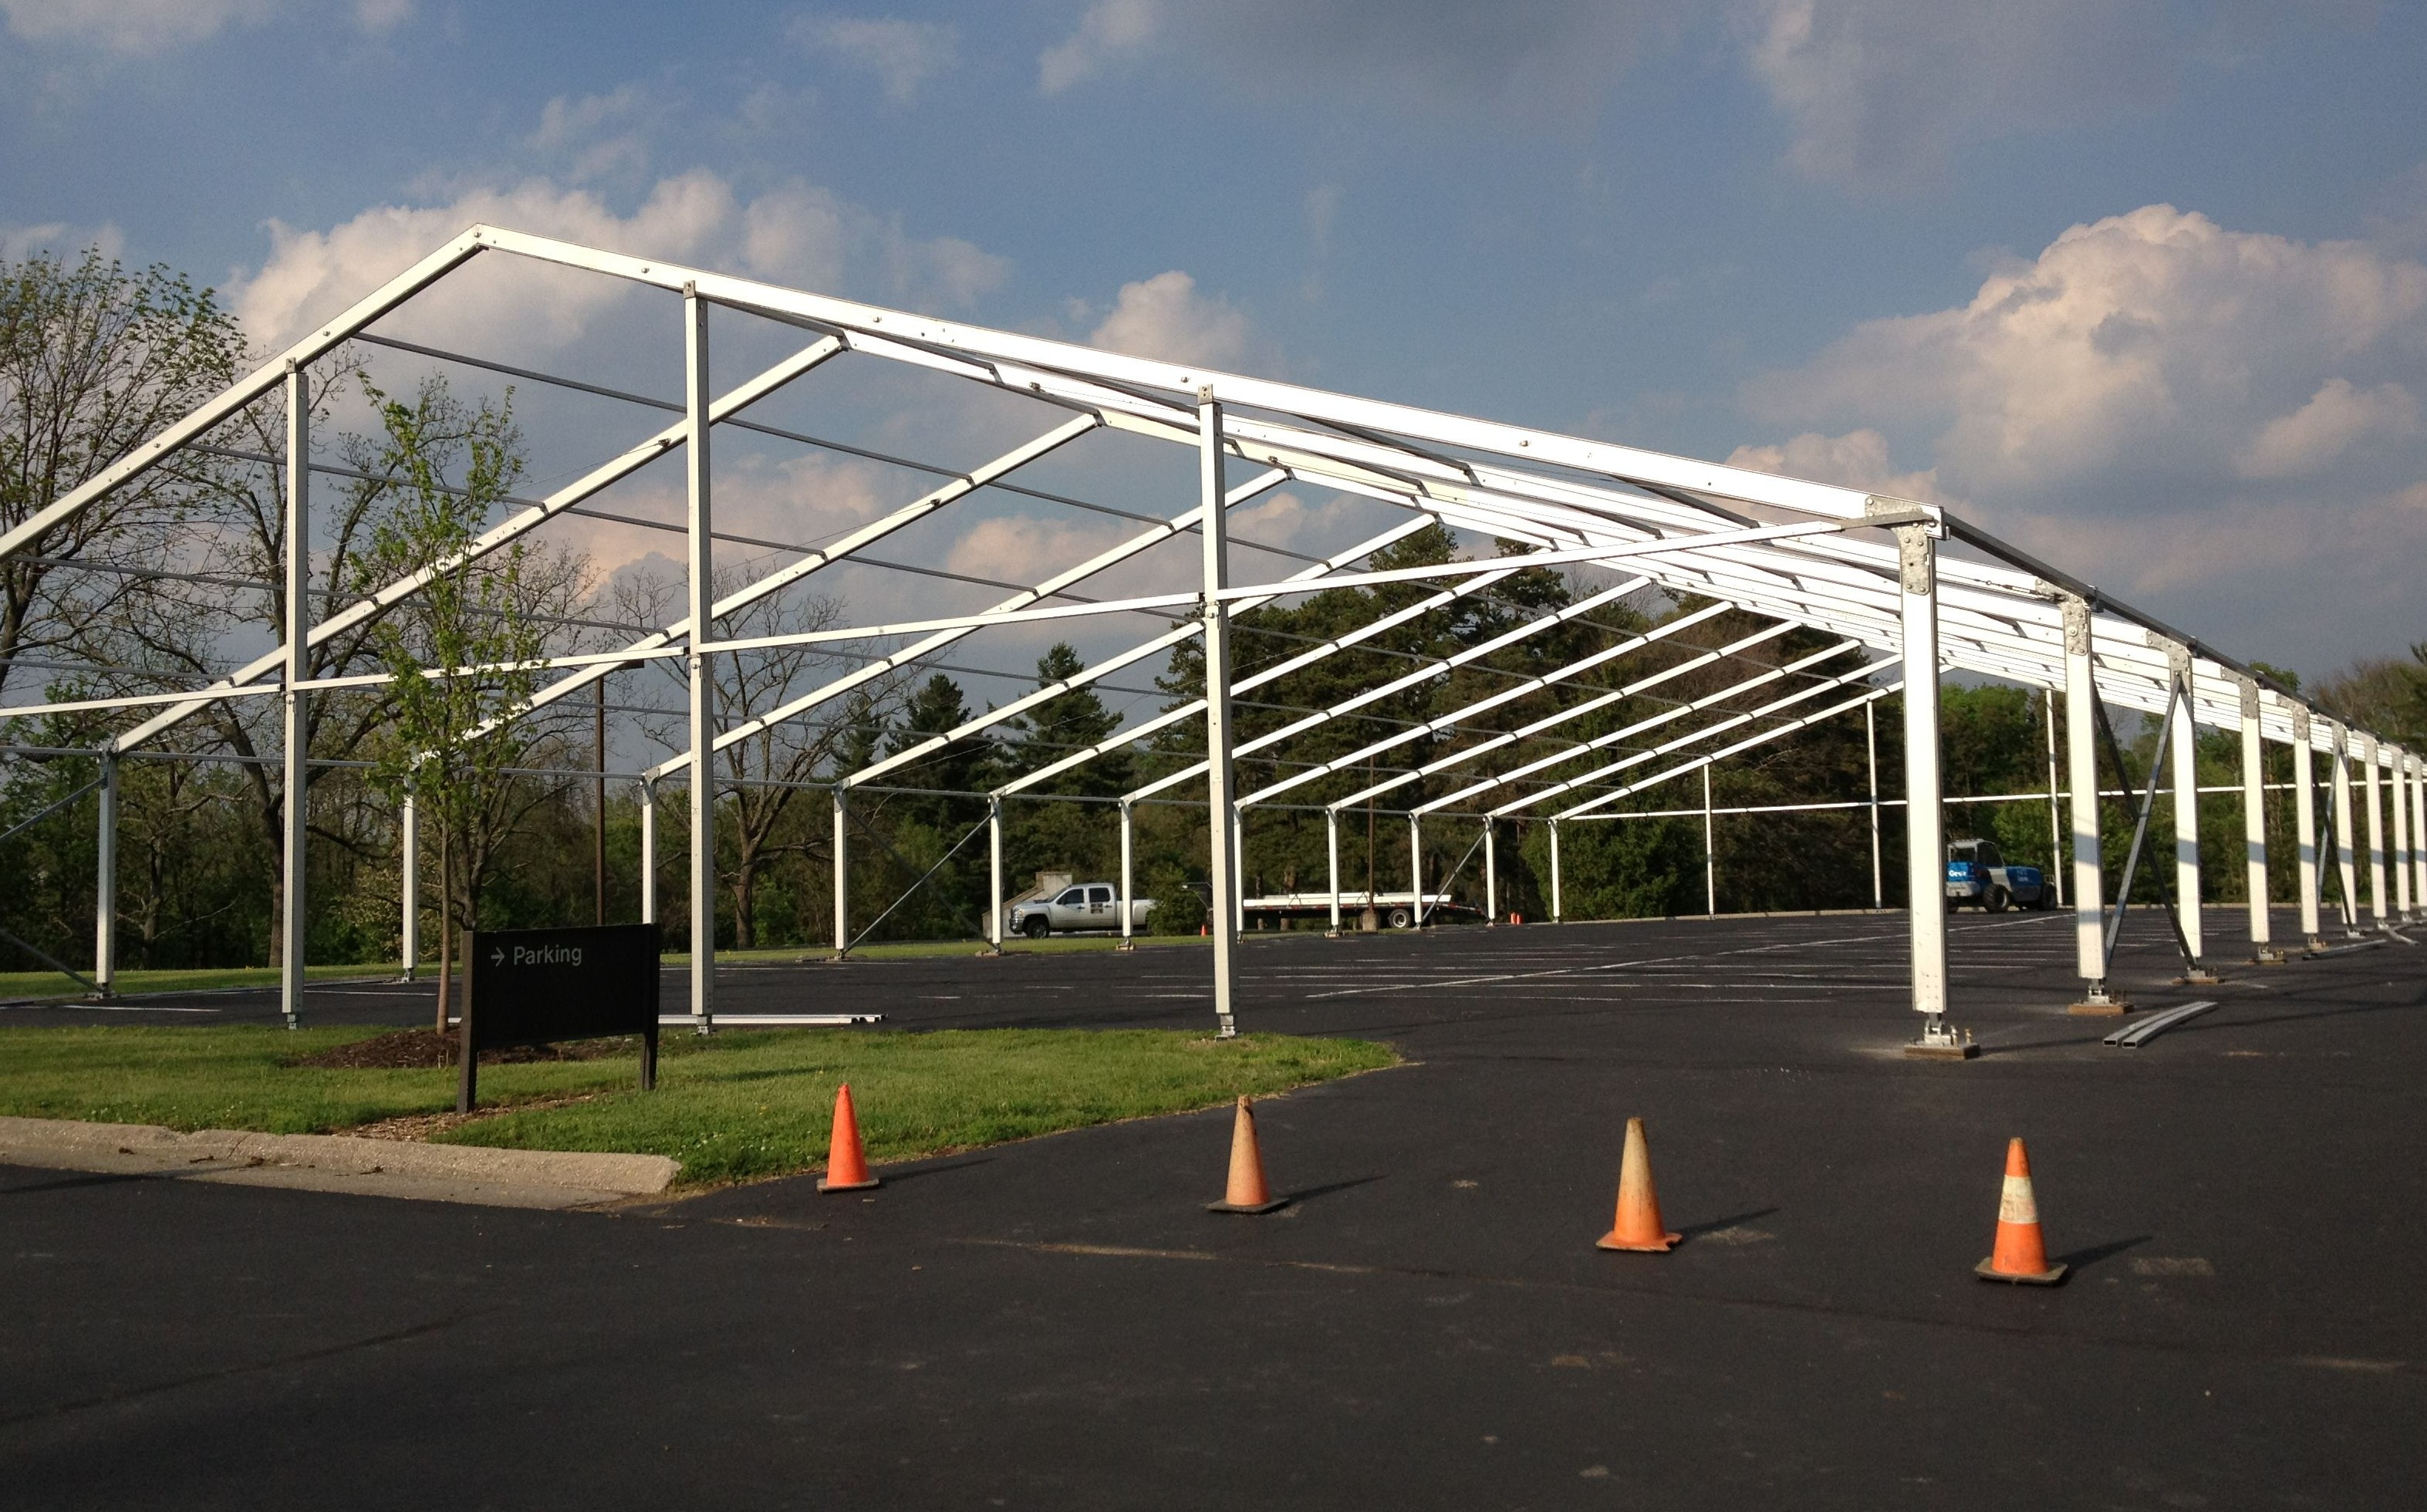 Clearspan Tents with heat, air conditioning and sides